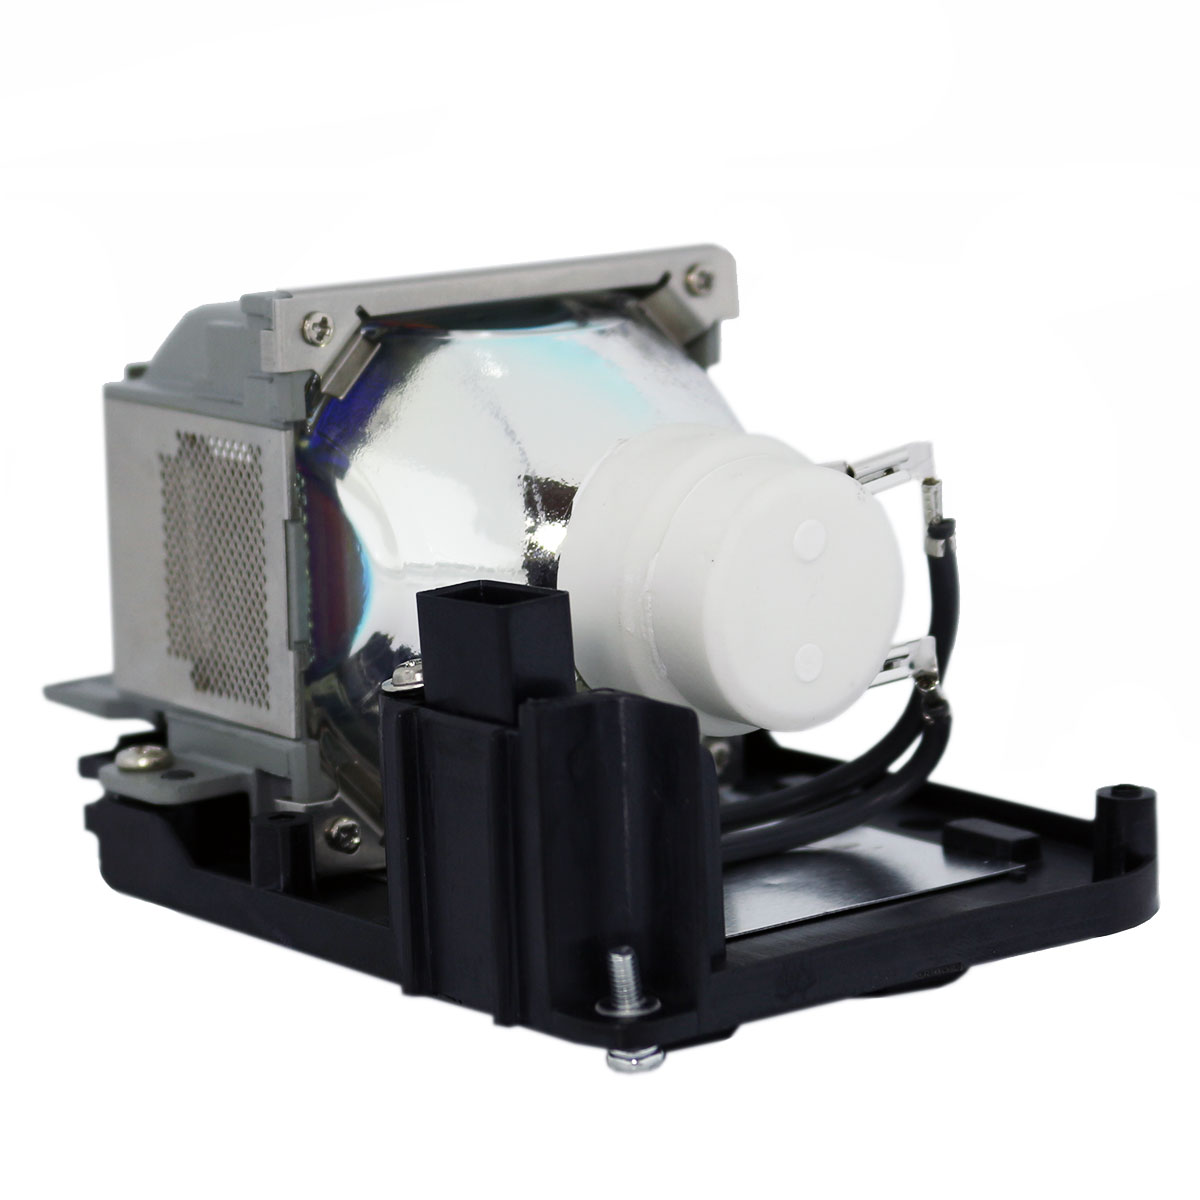 Lutema Economy for Sony VPL-SX135 Projector Lamp with Housing - image 3 of 5